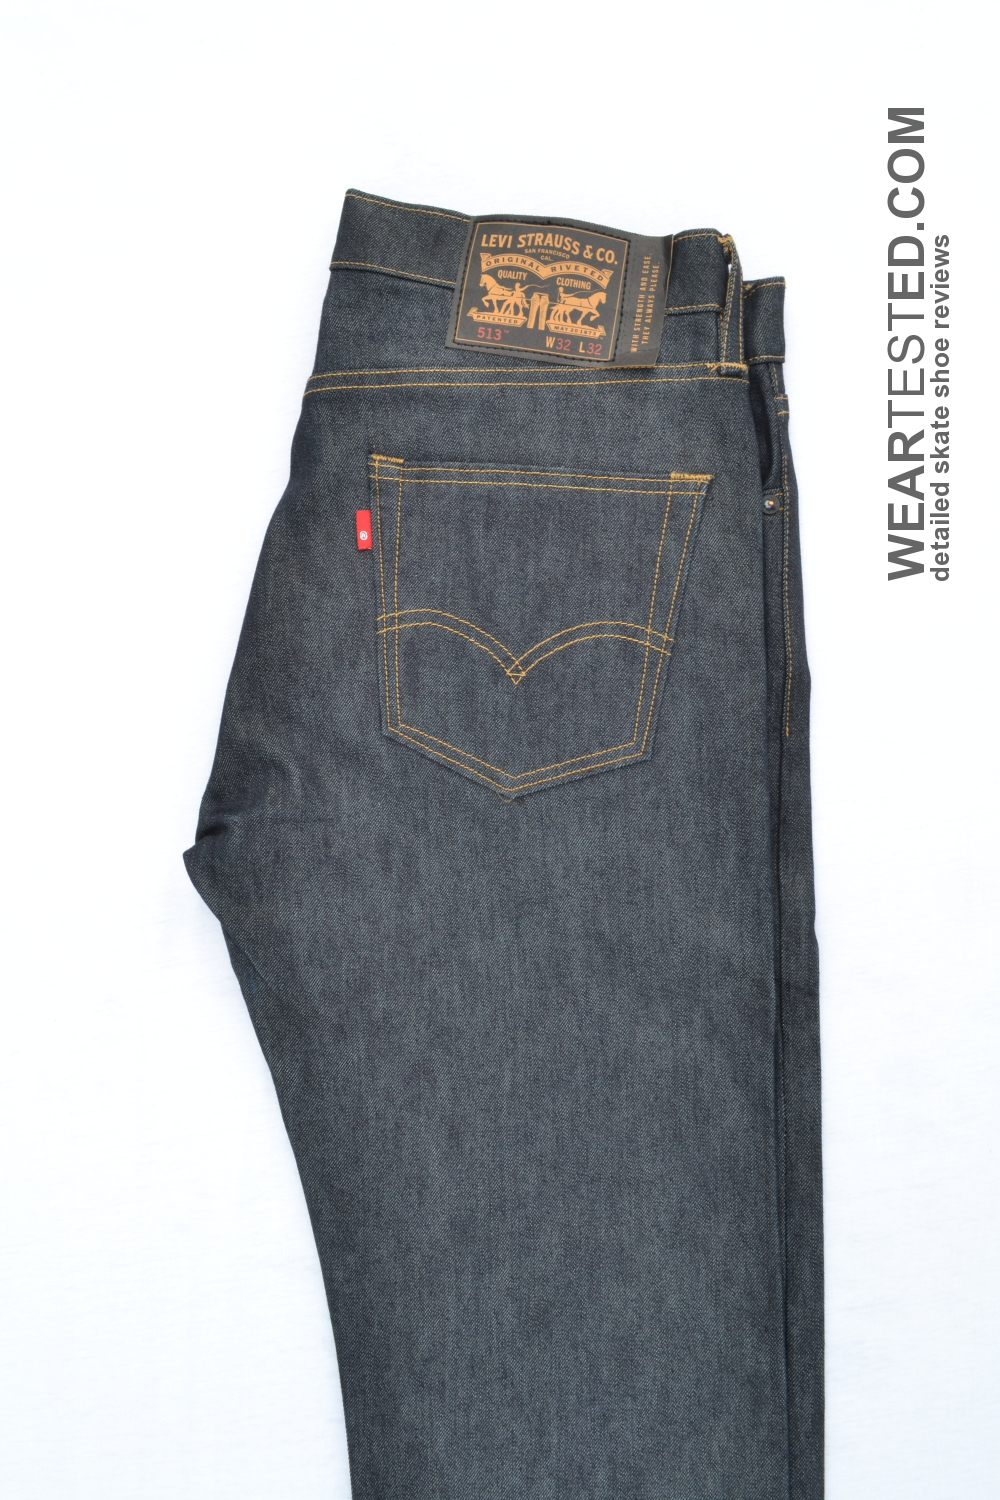 Levis Skateboarding Collection Checkout